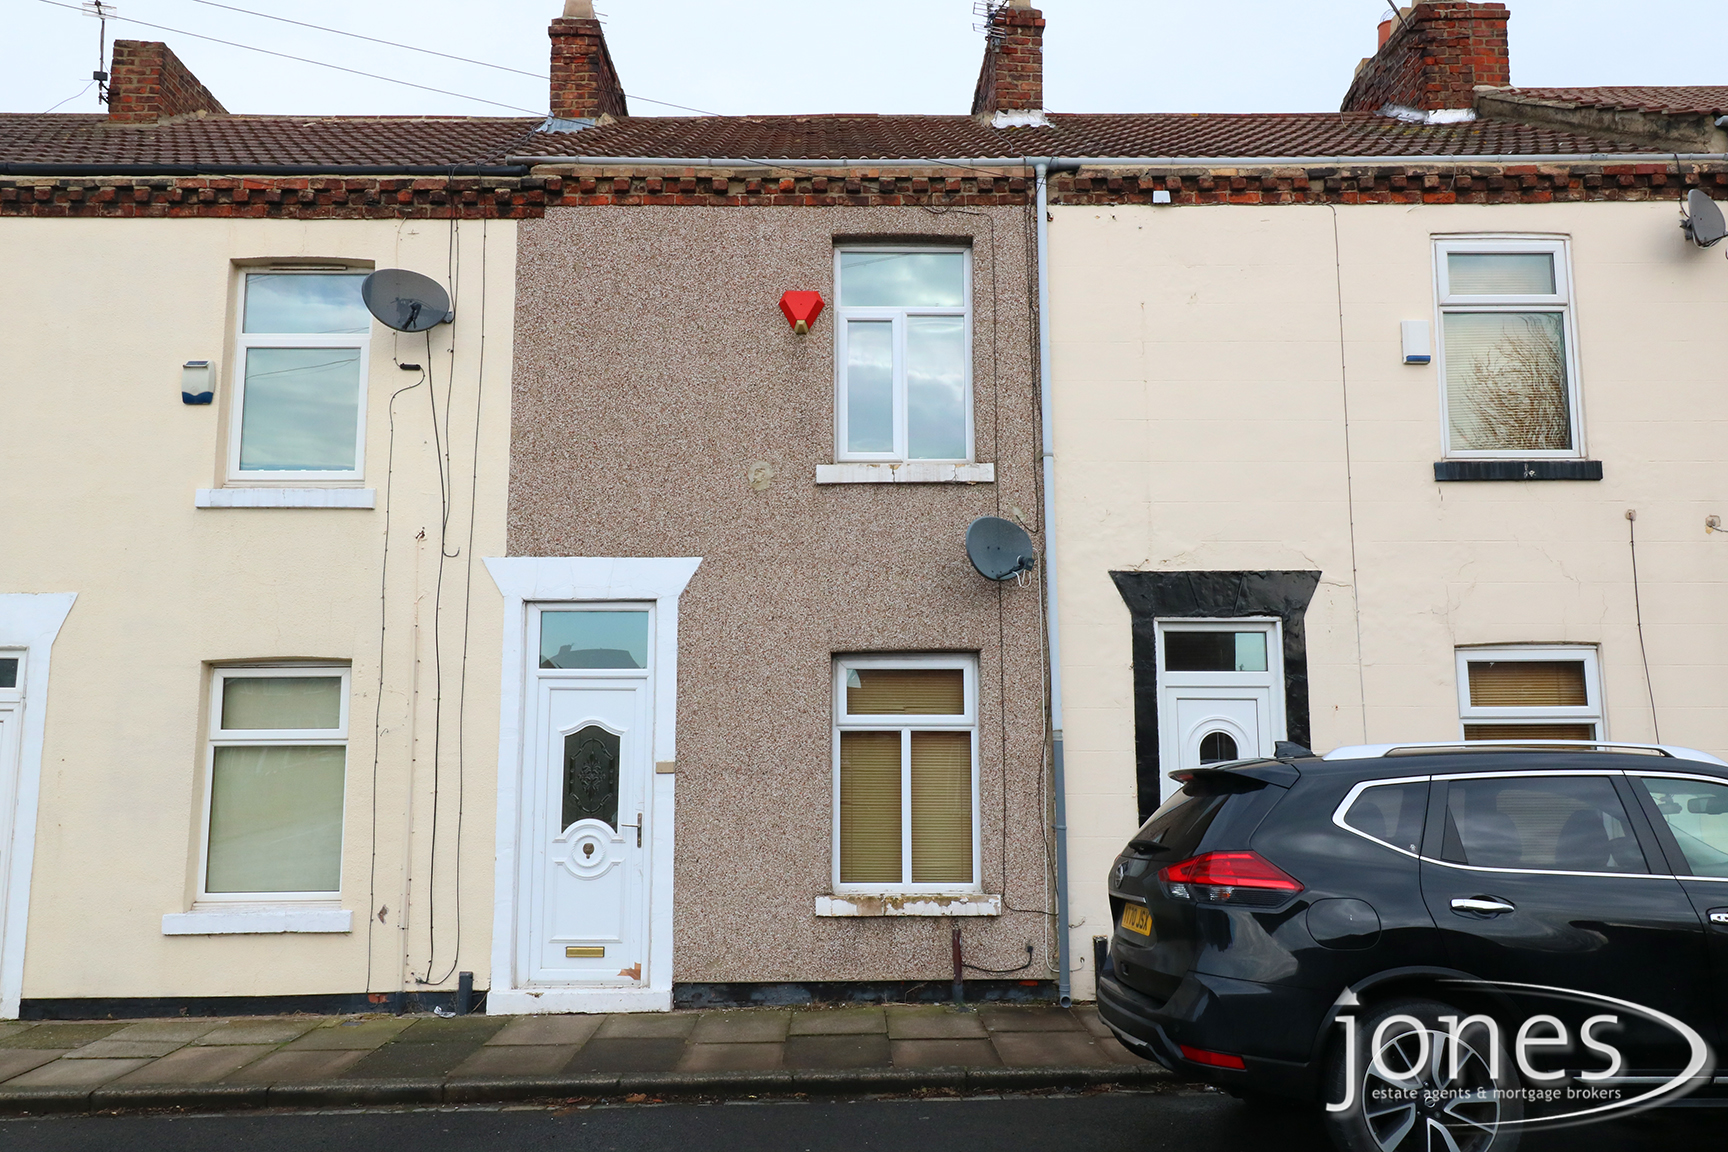 Home for Sale Let - Photo 01 Hallifield Street, Norton, Stockton on Tees, TS20 2HE